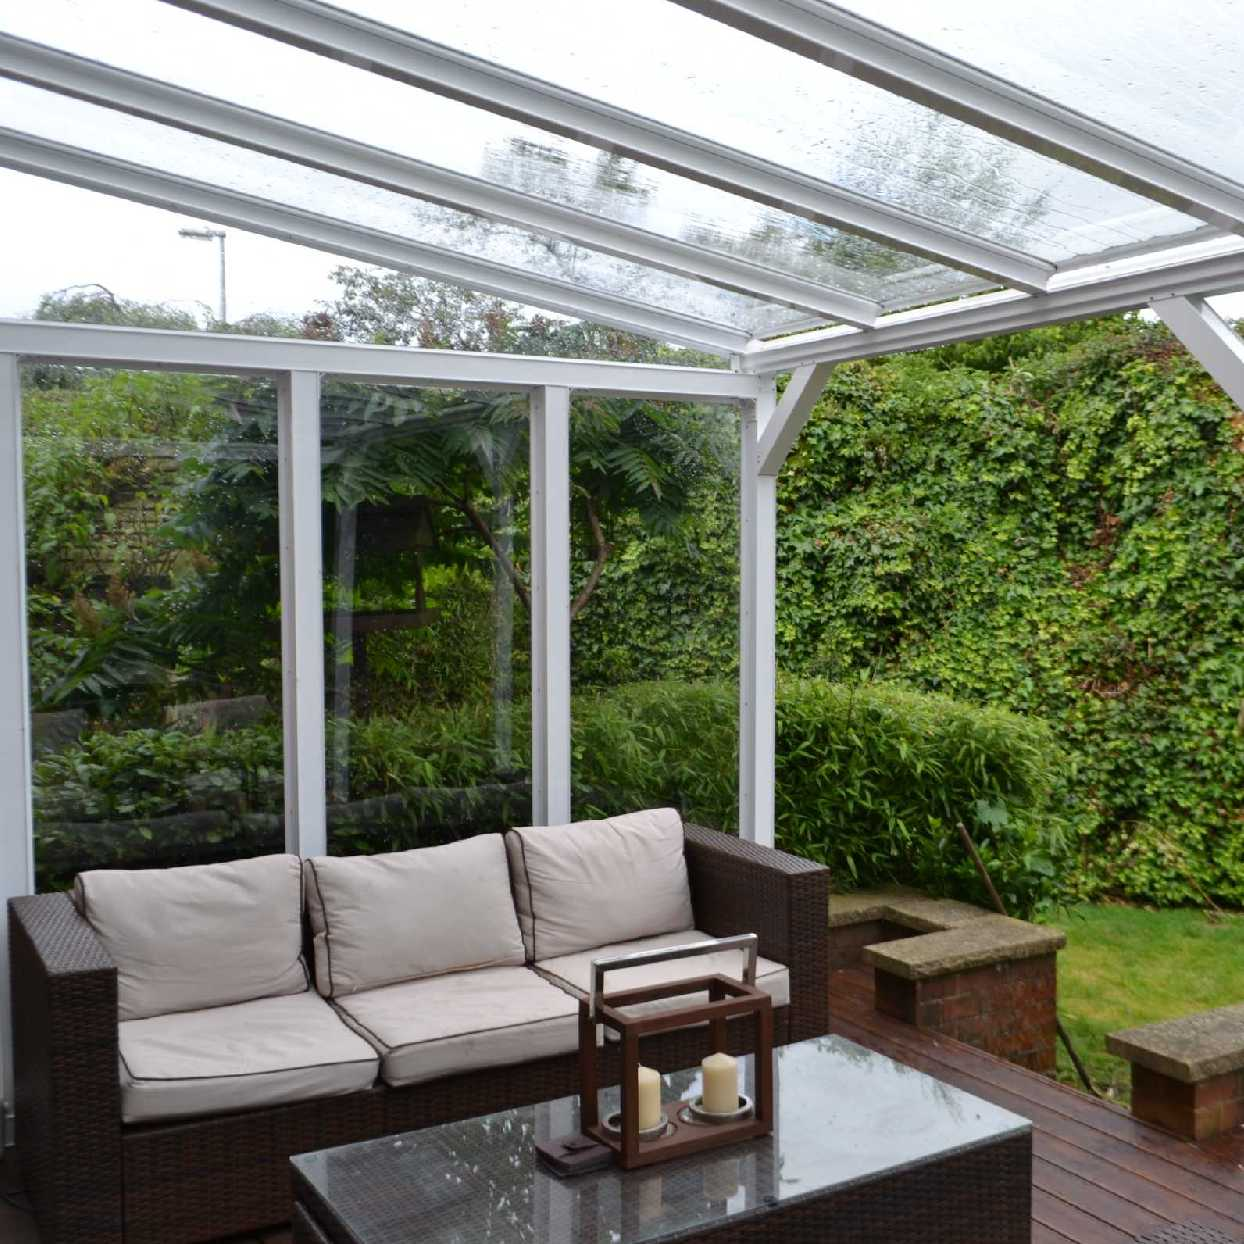 Great selection of Omega Smart Lean-To Canopy with 16mm Polycarbonate Glazing - 7.0m (W) x 4.0m (P), (4) Supporting Posts